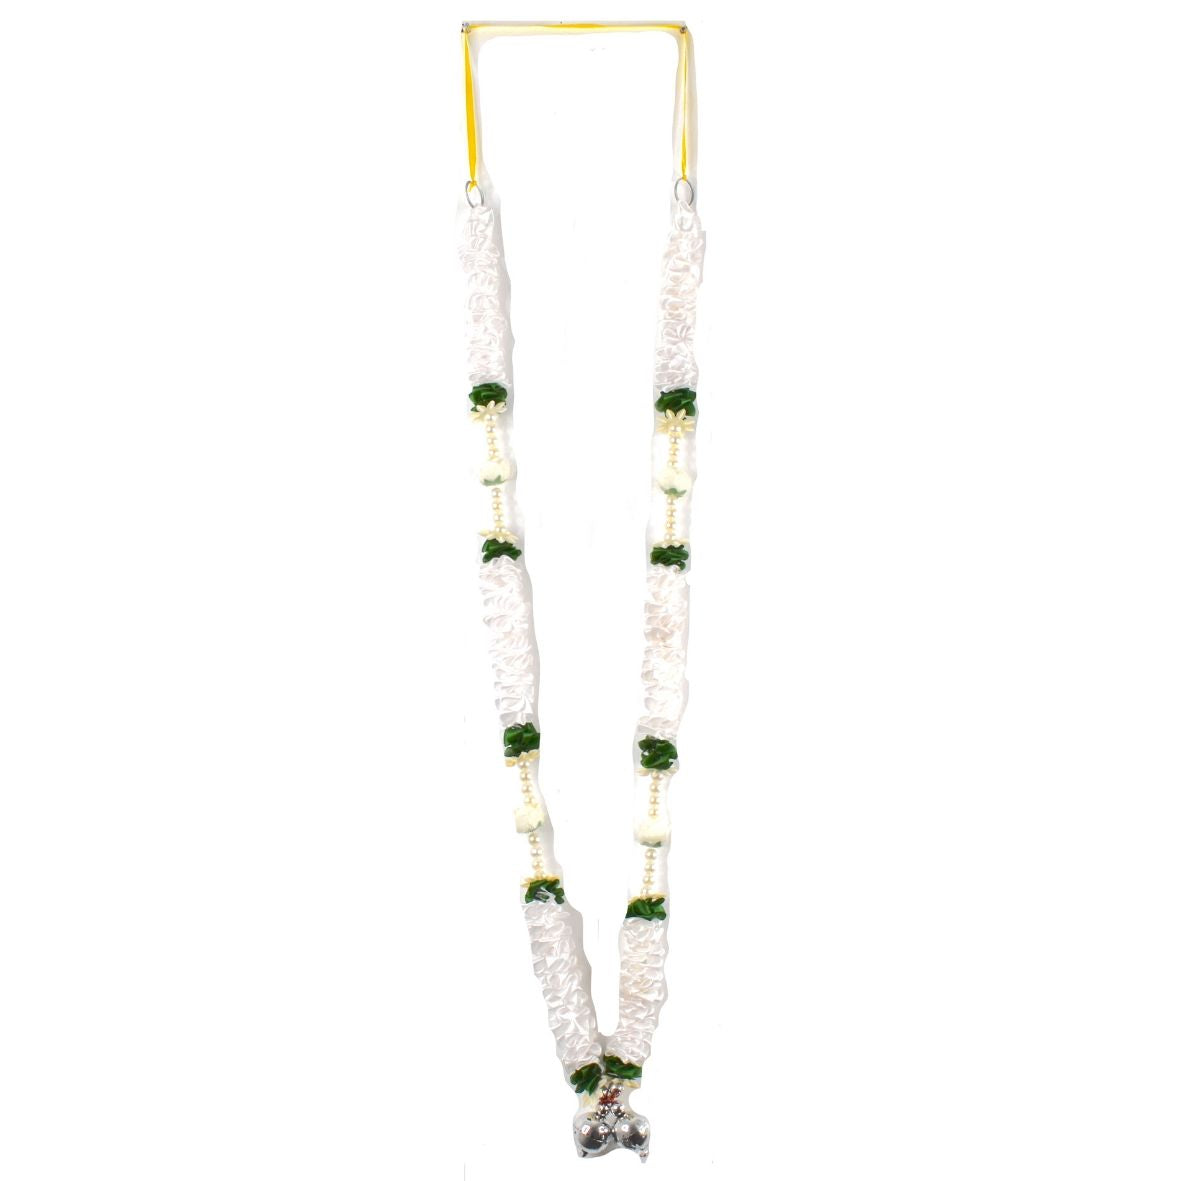 1 x White & Green Artificial Necklace Garland Flowers with Bells